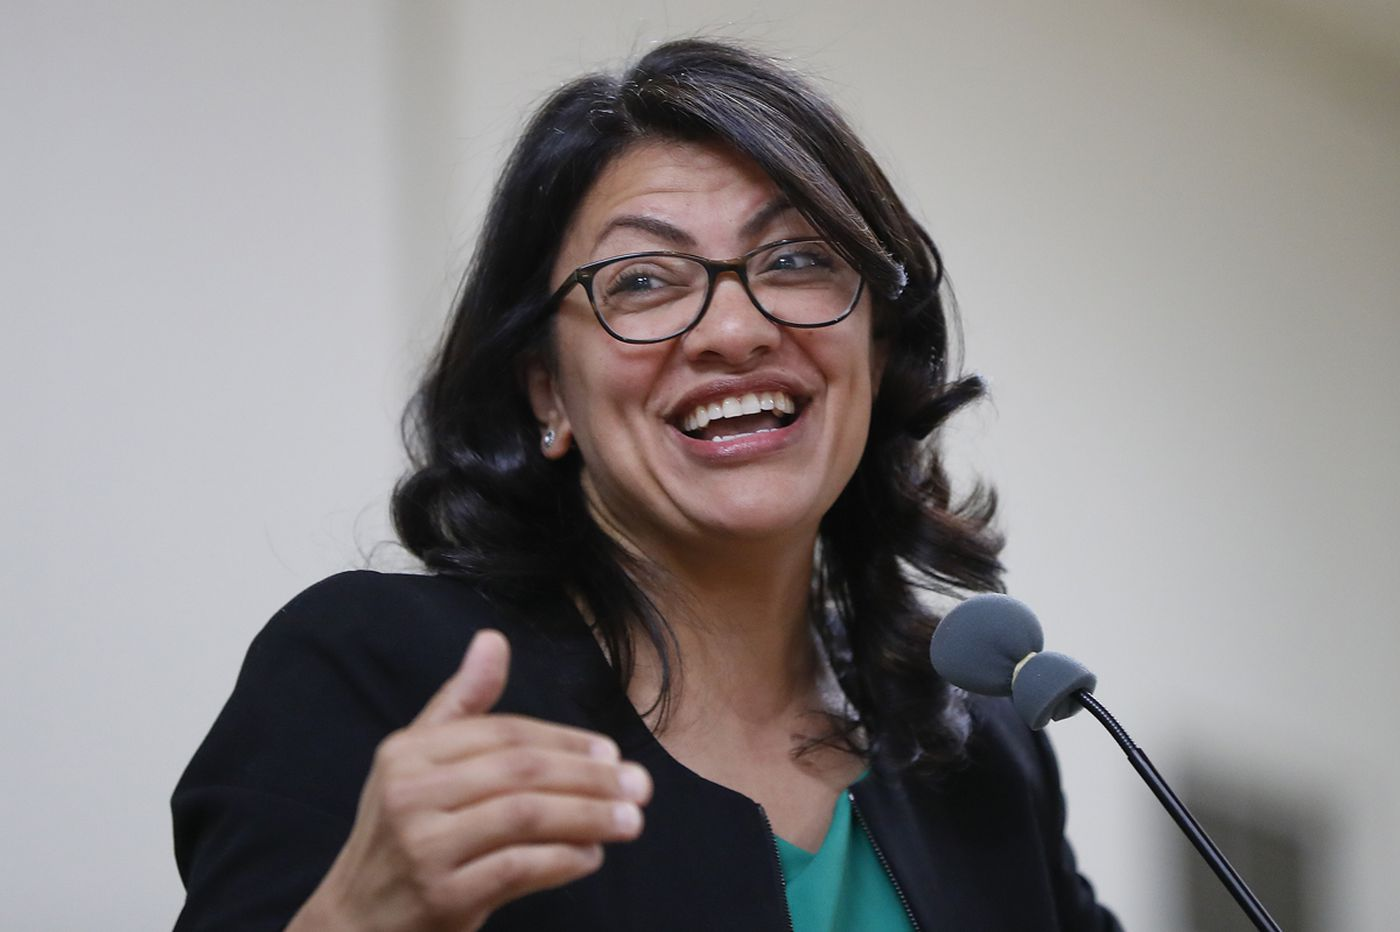 New Democratic congresswoman Rashida Tlaib makes profane vow about Trump